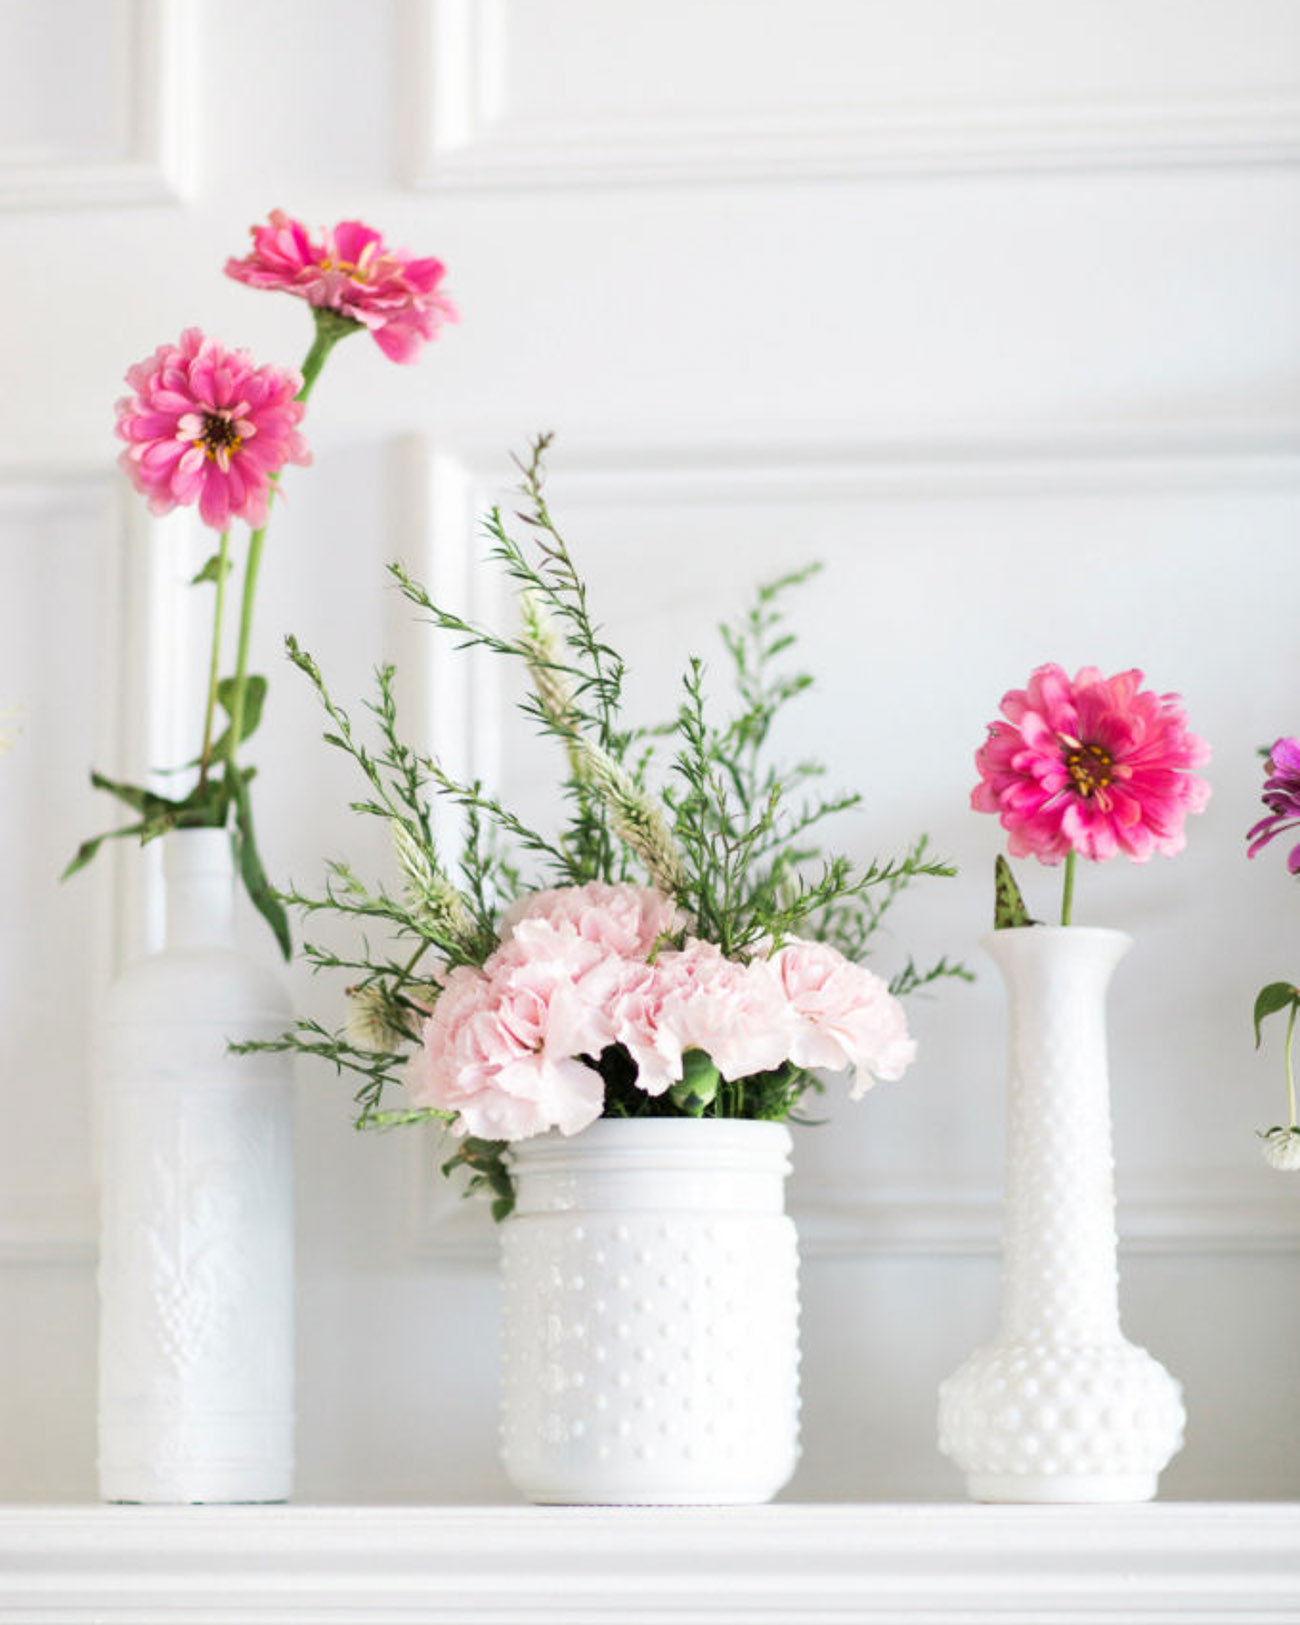 How To Make Milk Glass At Home - The Blog Societies